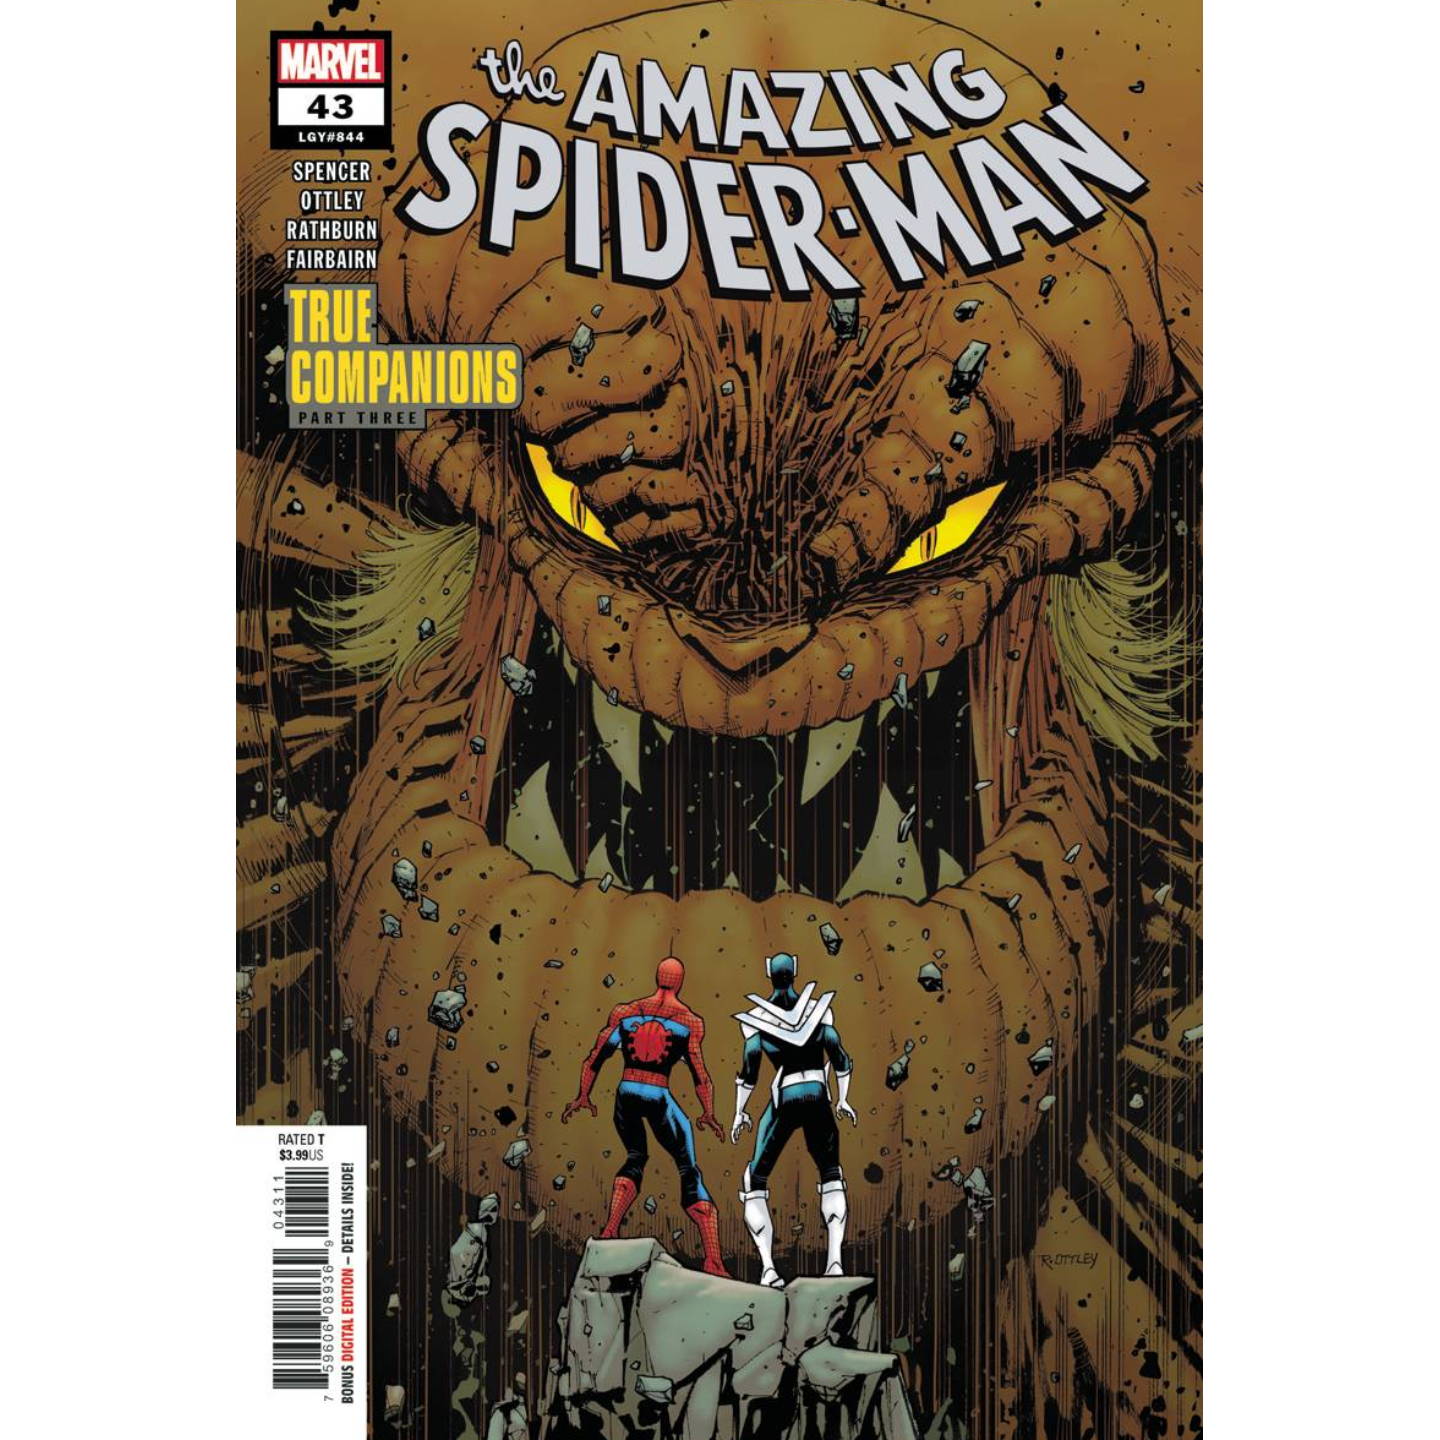 AMAZING SPIDER-MAN #43